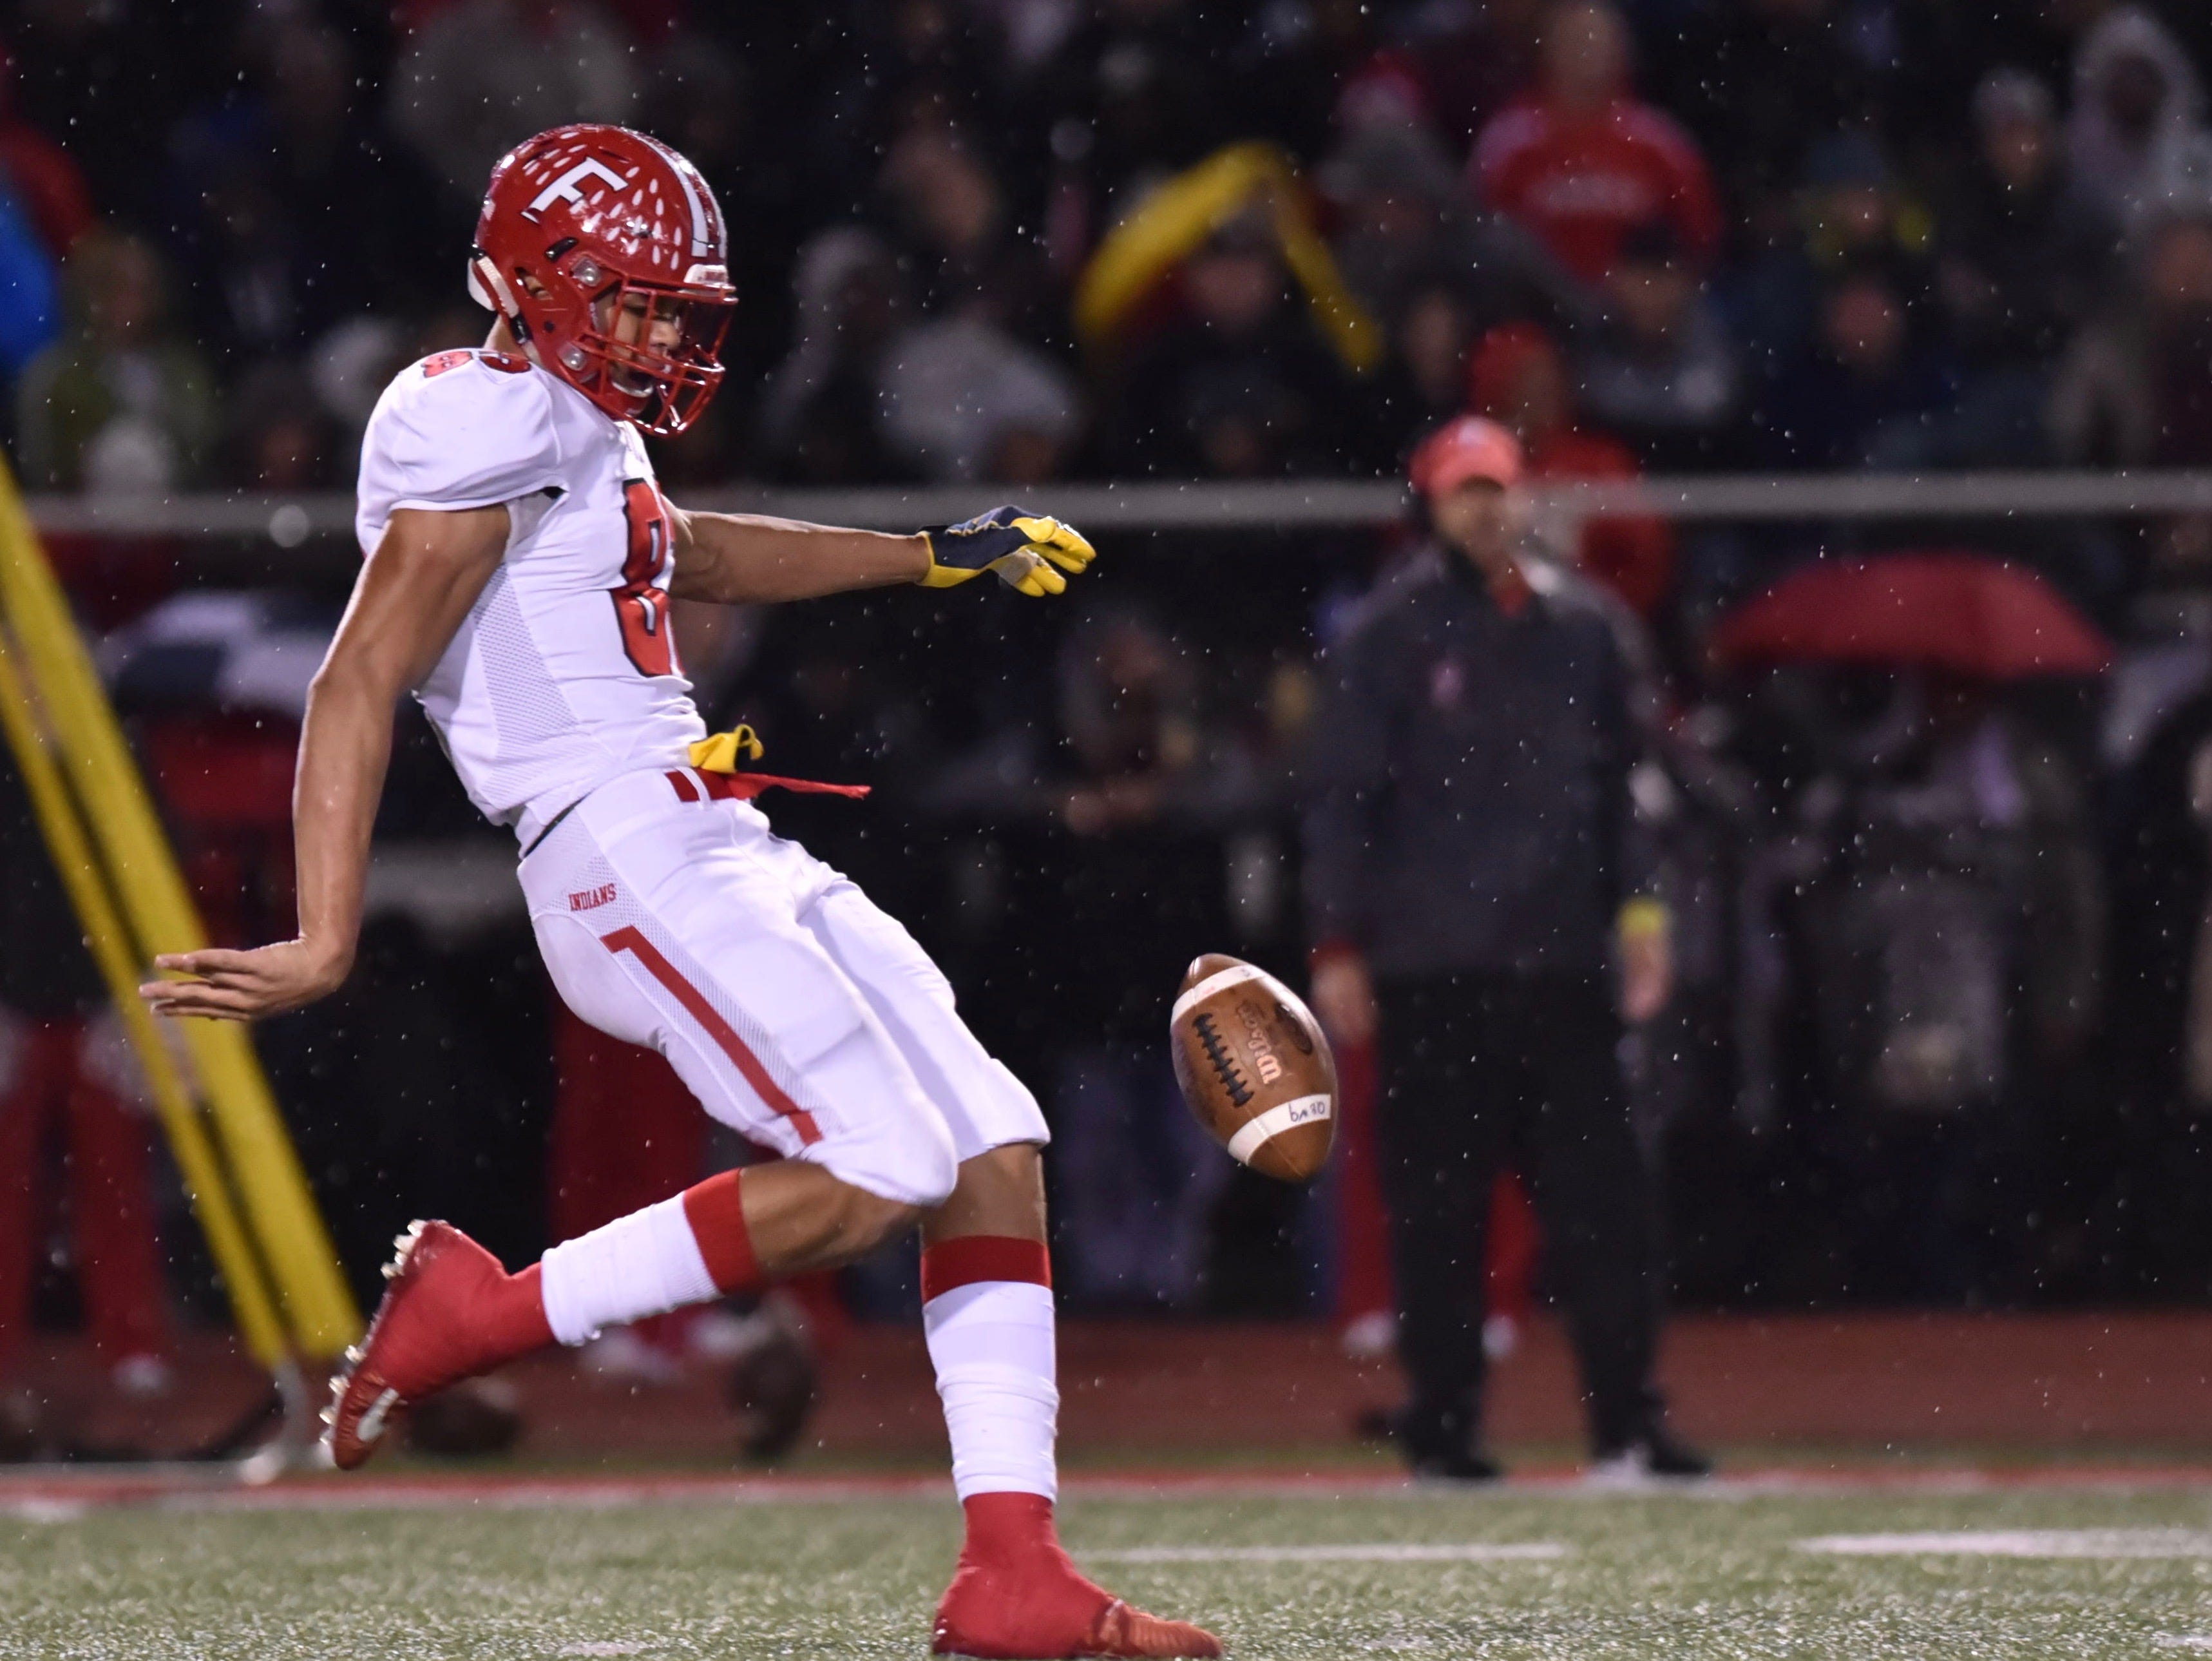 Fairfield's Erick All punts the ball against Coelrain as the rain began to fall Friday, Oct. 19, 2018 at Colerain High School